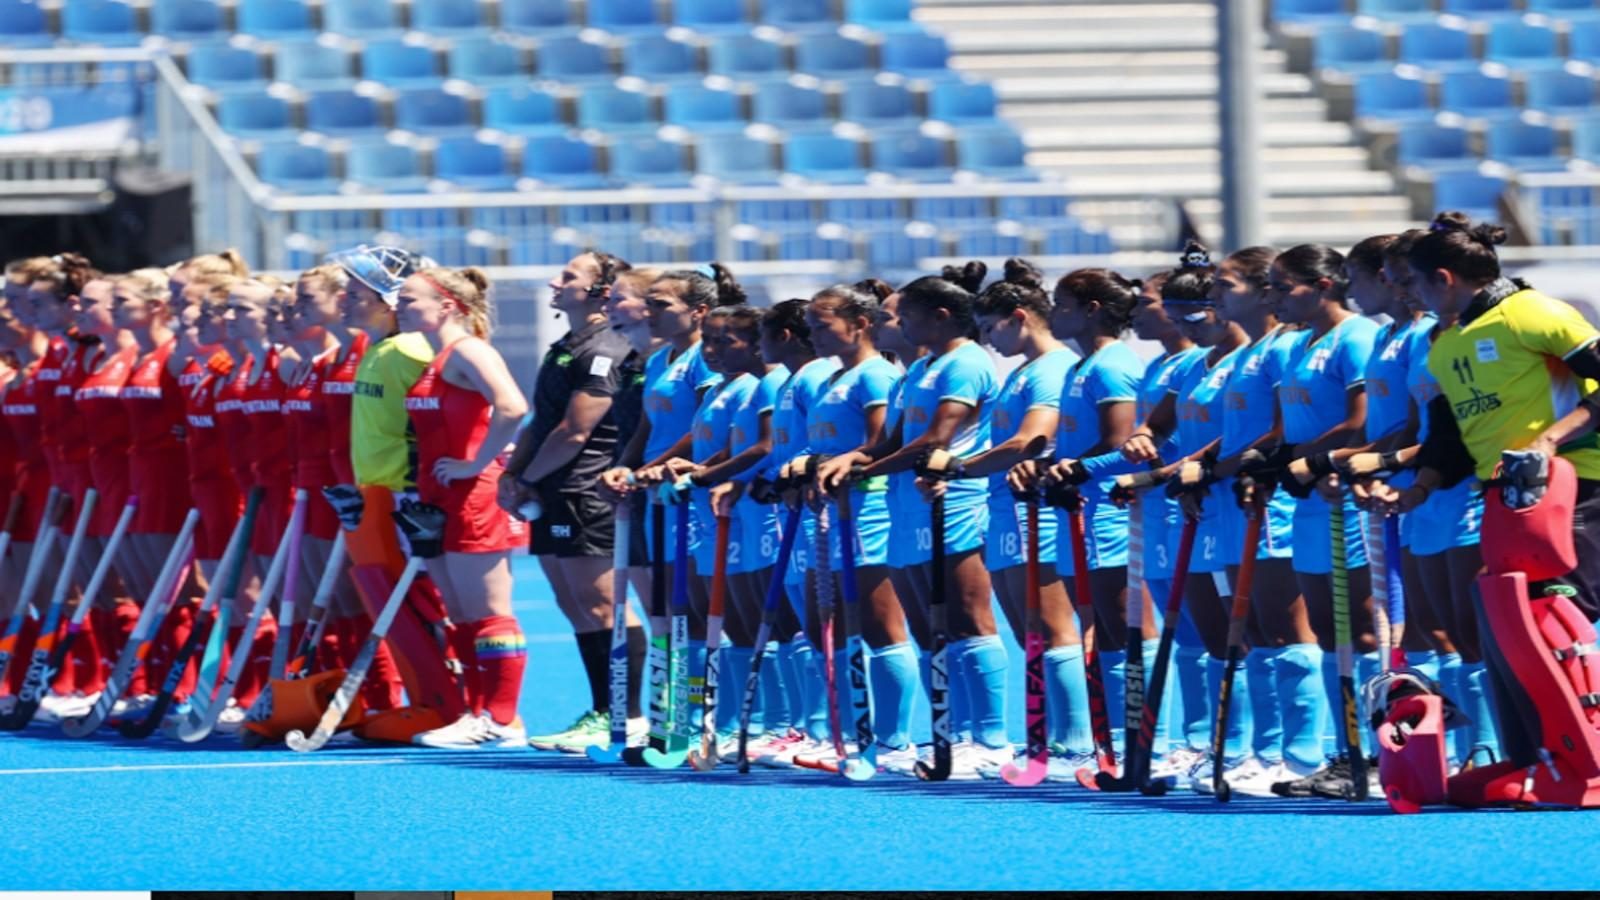 tokyo-olympics-2020-indian-womens-hockey-team-loses-3-4-to-great-britain-in-bronze-play-off-match